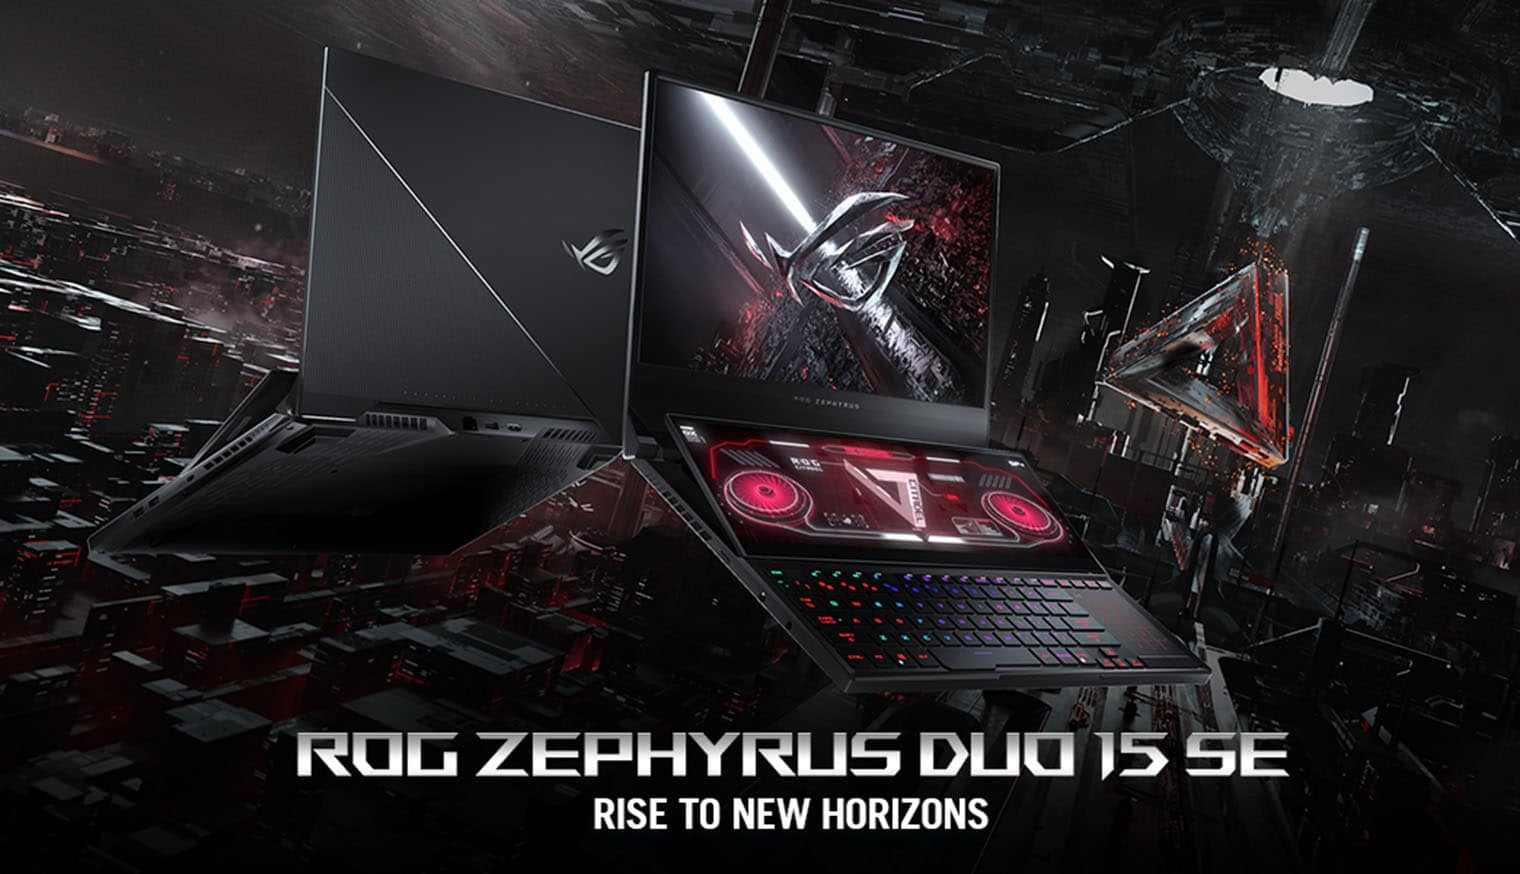 asus rog zephyrus duo se 15 listed on amazon